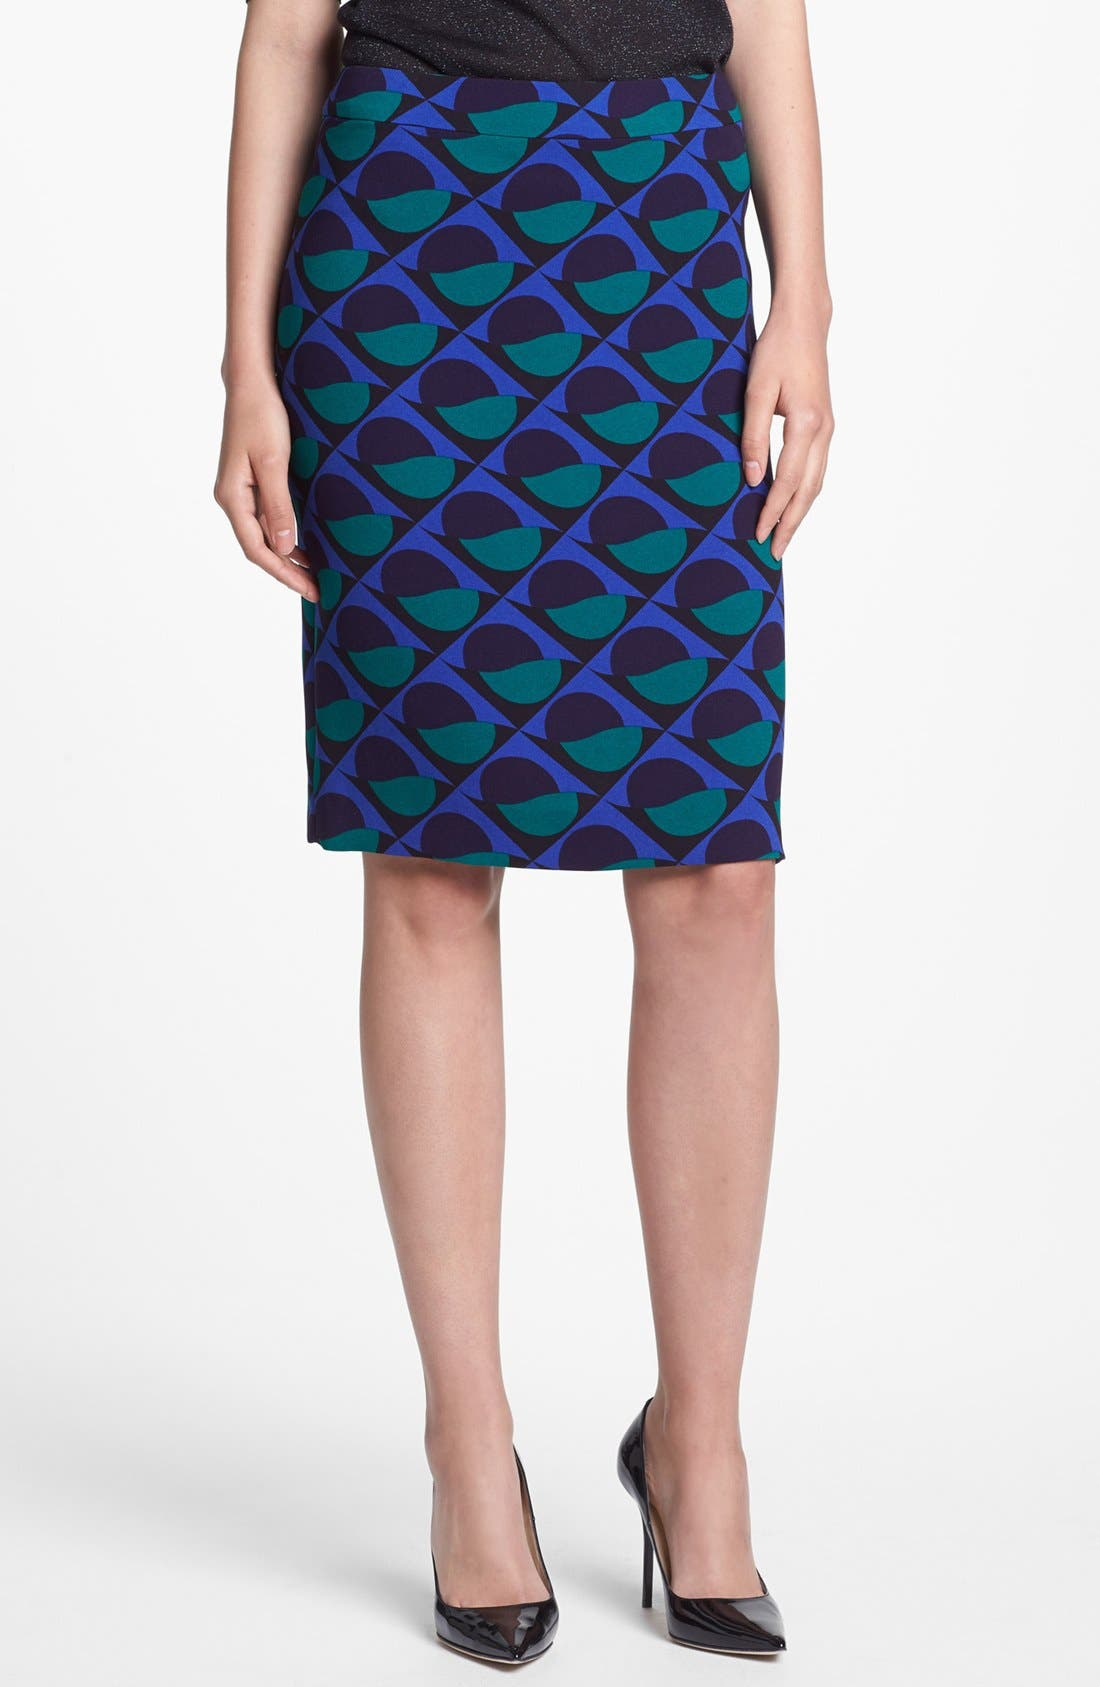 Alternate Image 1 Selected - MARC BY MARC JACOBS 'Etta' Print Pencil Skirt